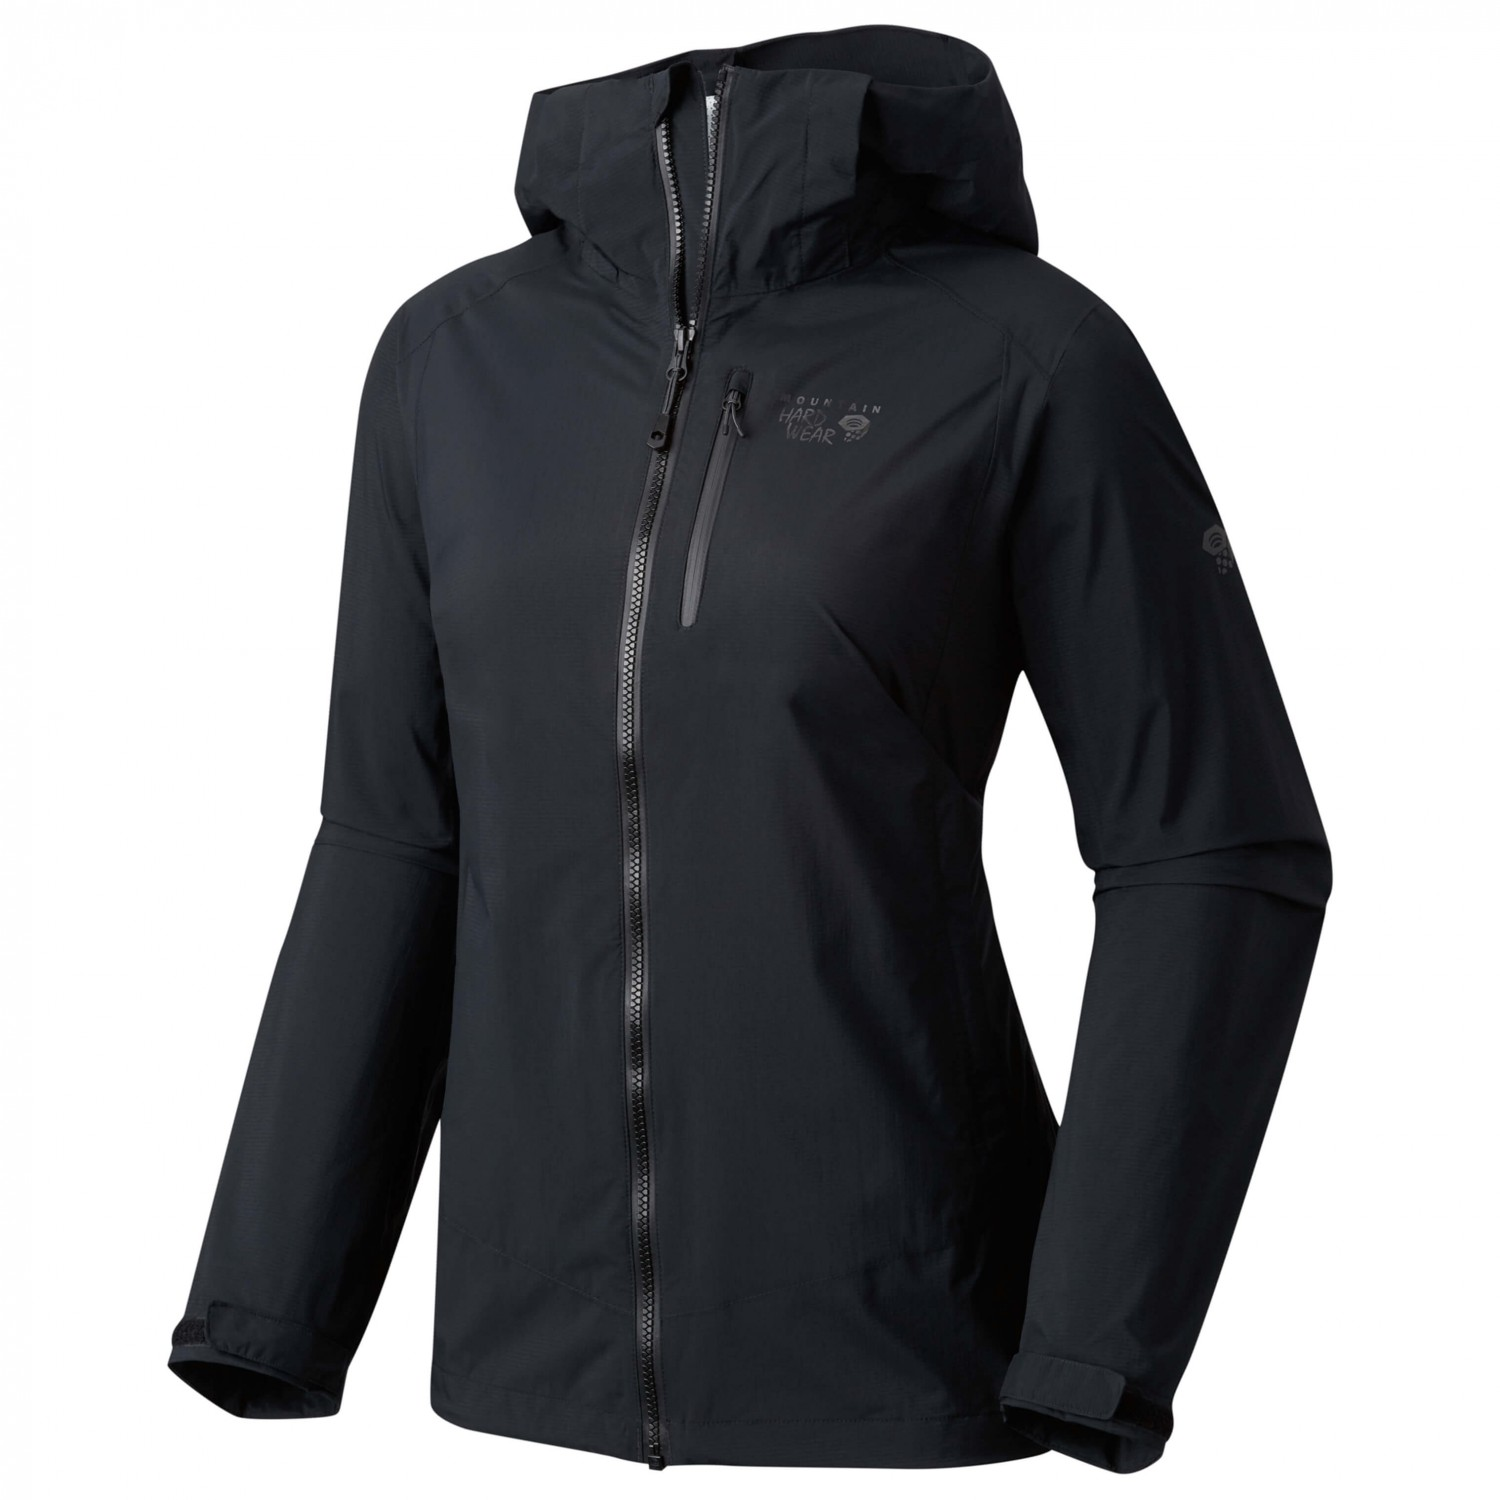 Mountain hardwear jacket women